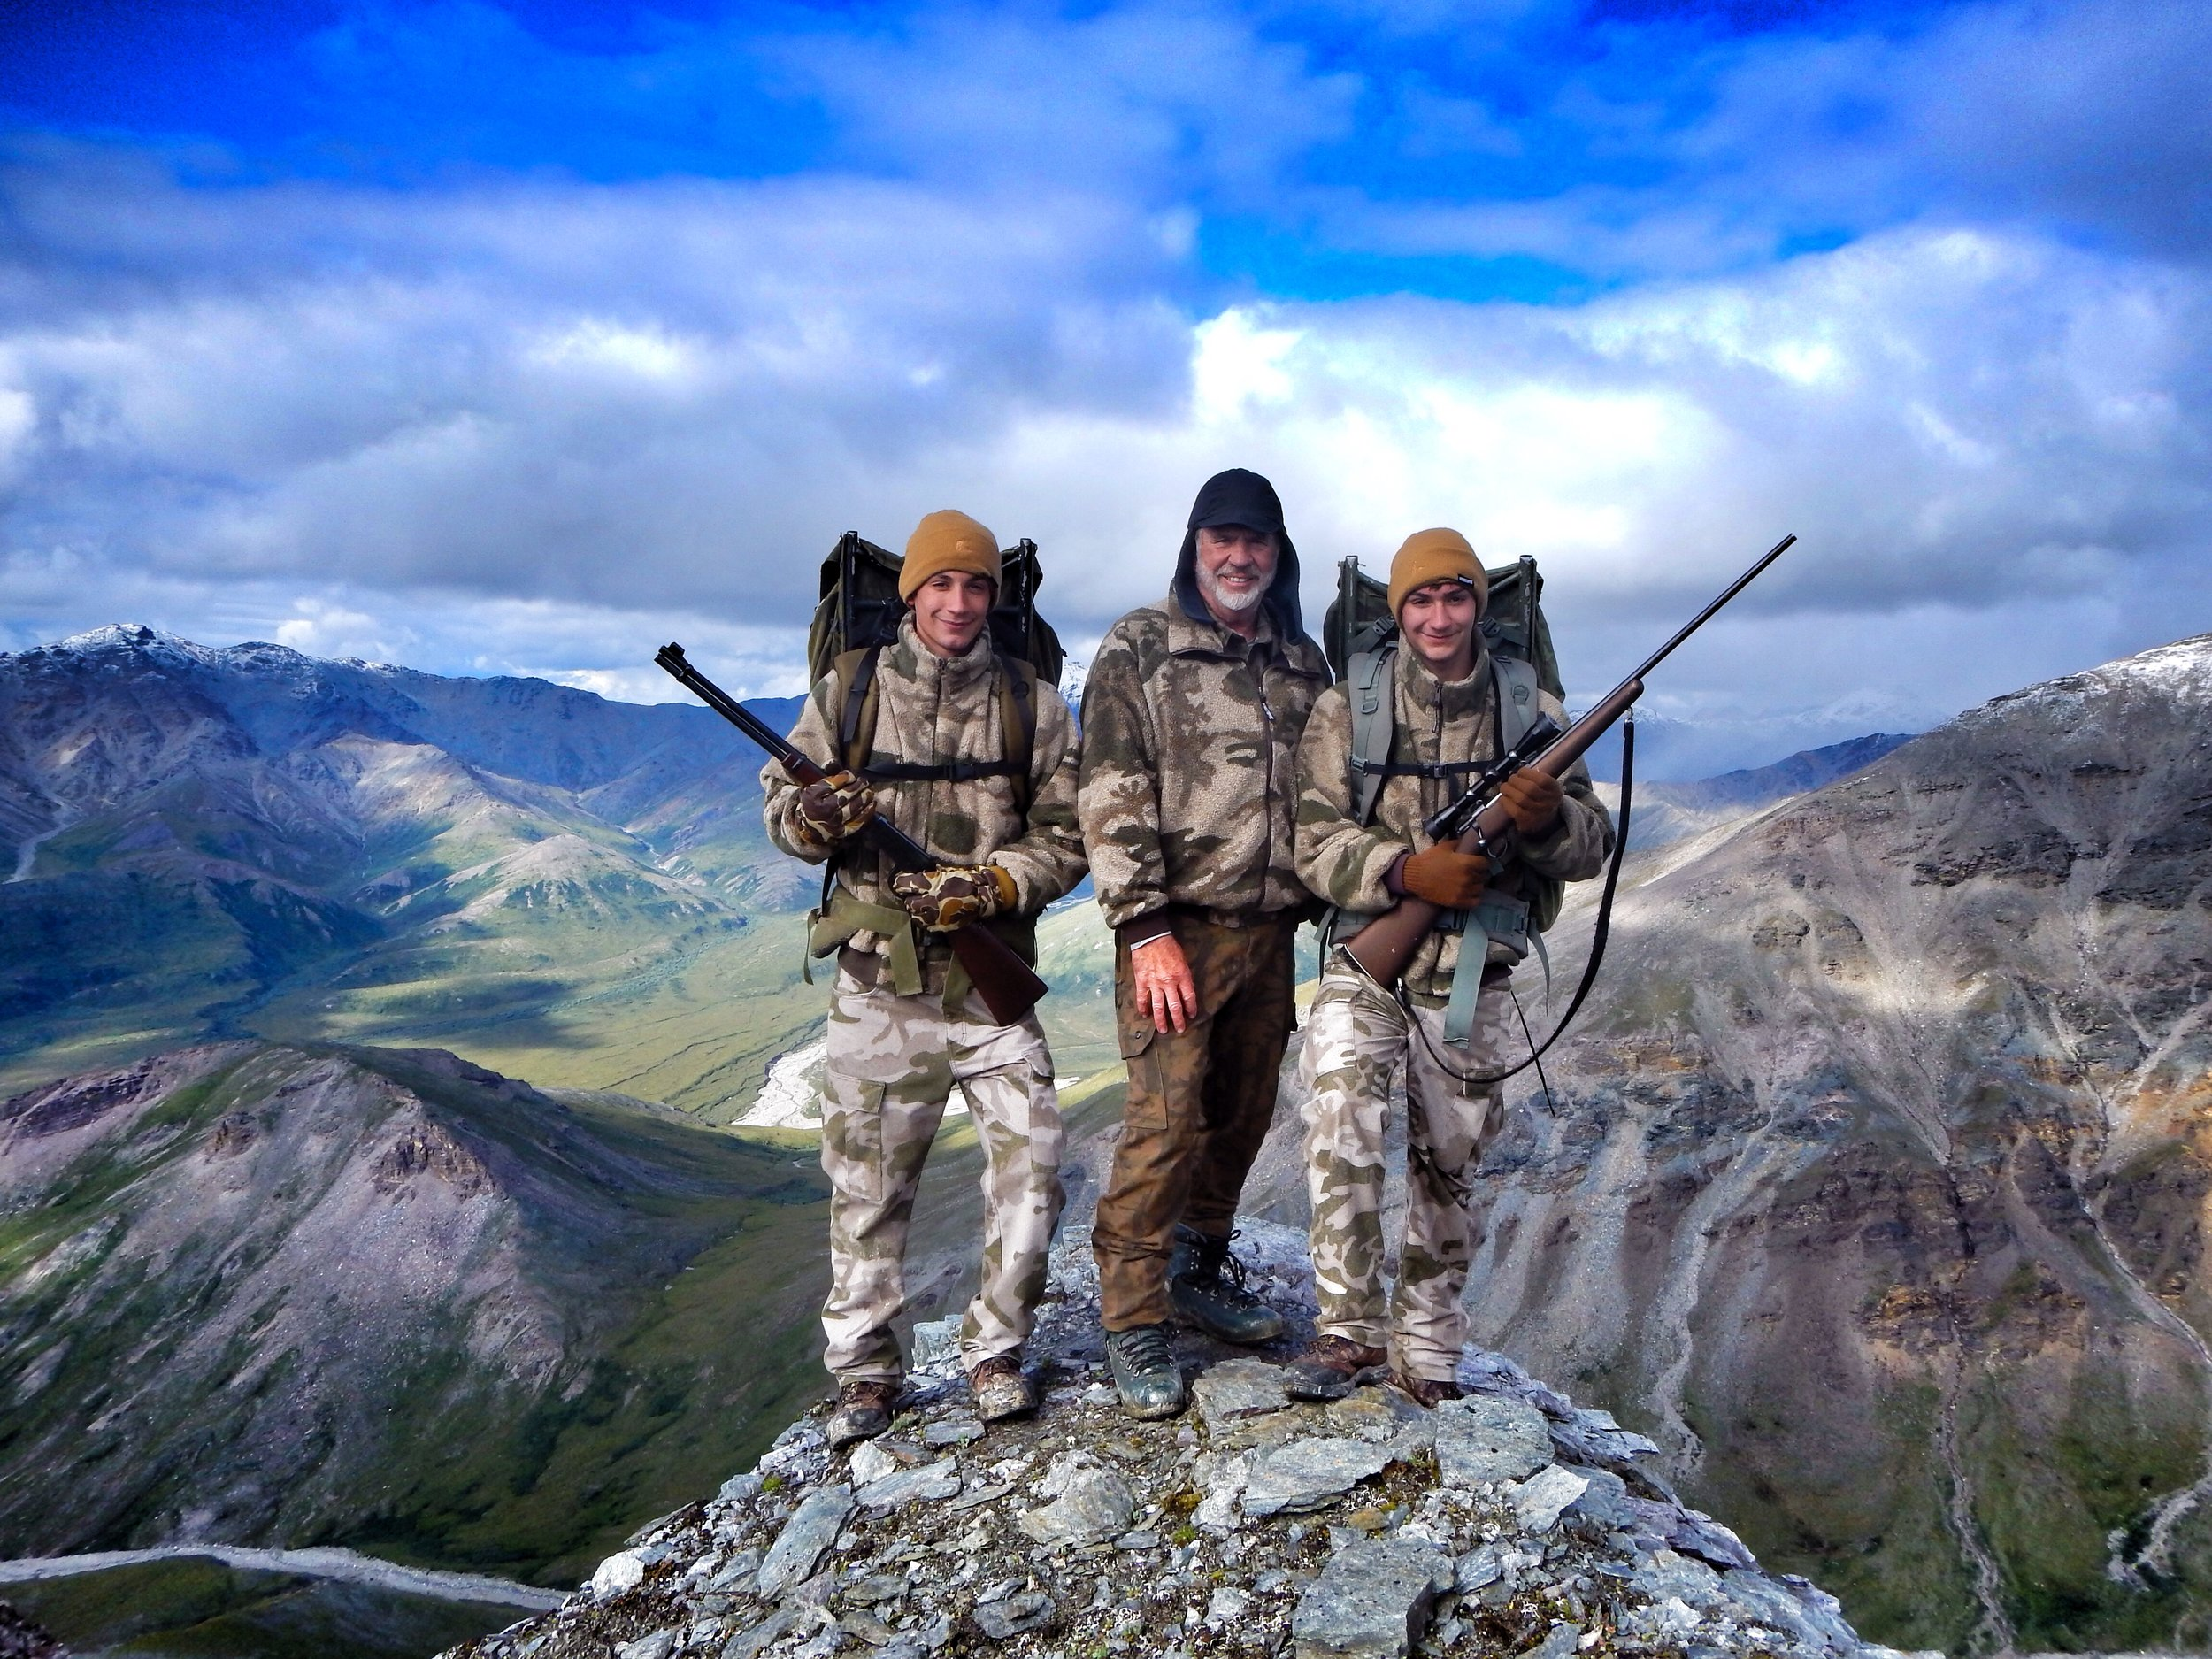 Two of my grandsons Jared on the left and Nathan on the right hunting sheep.